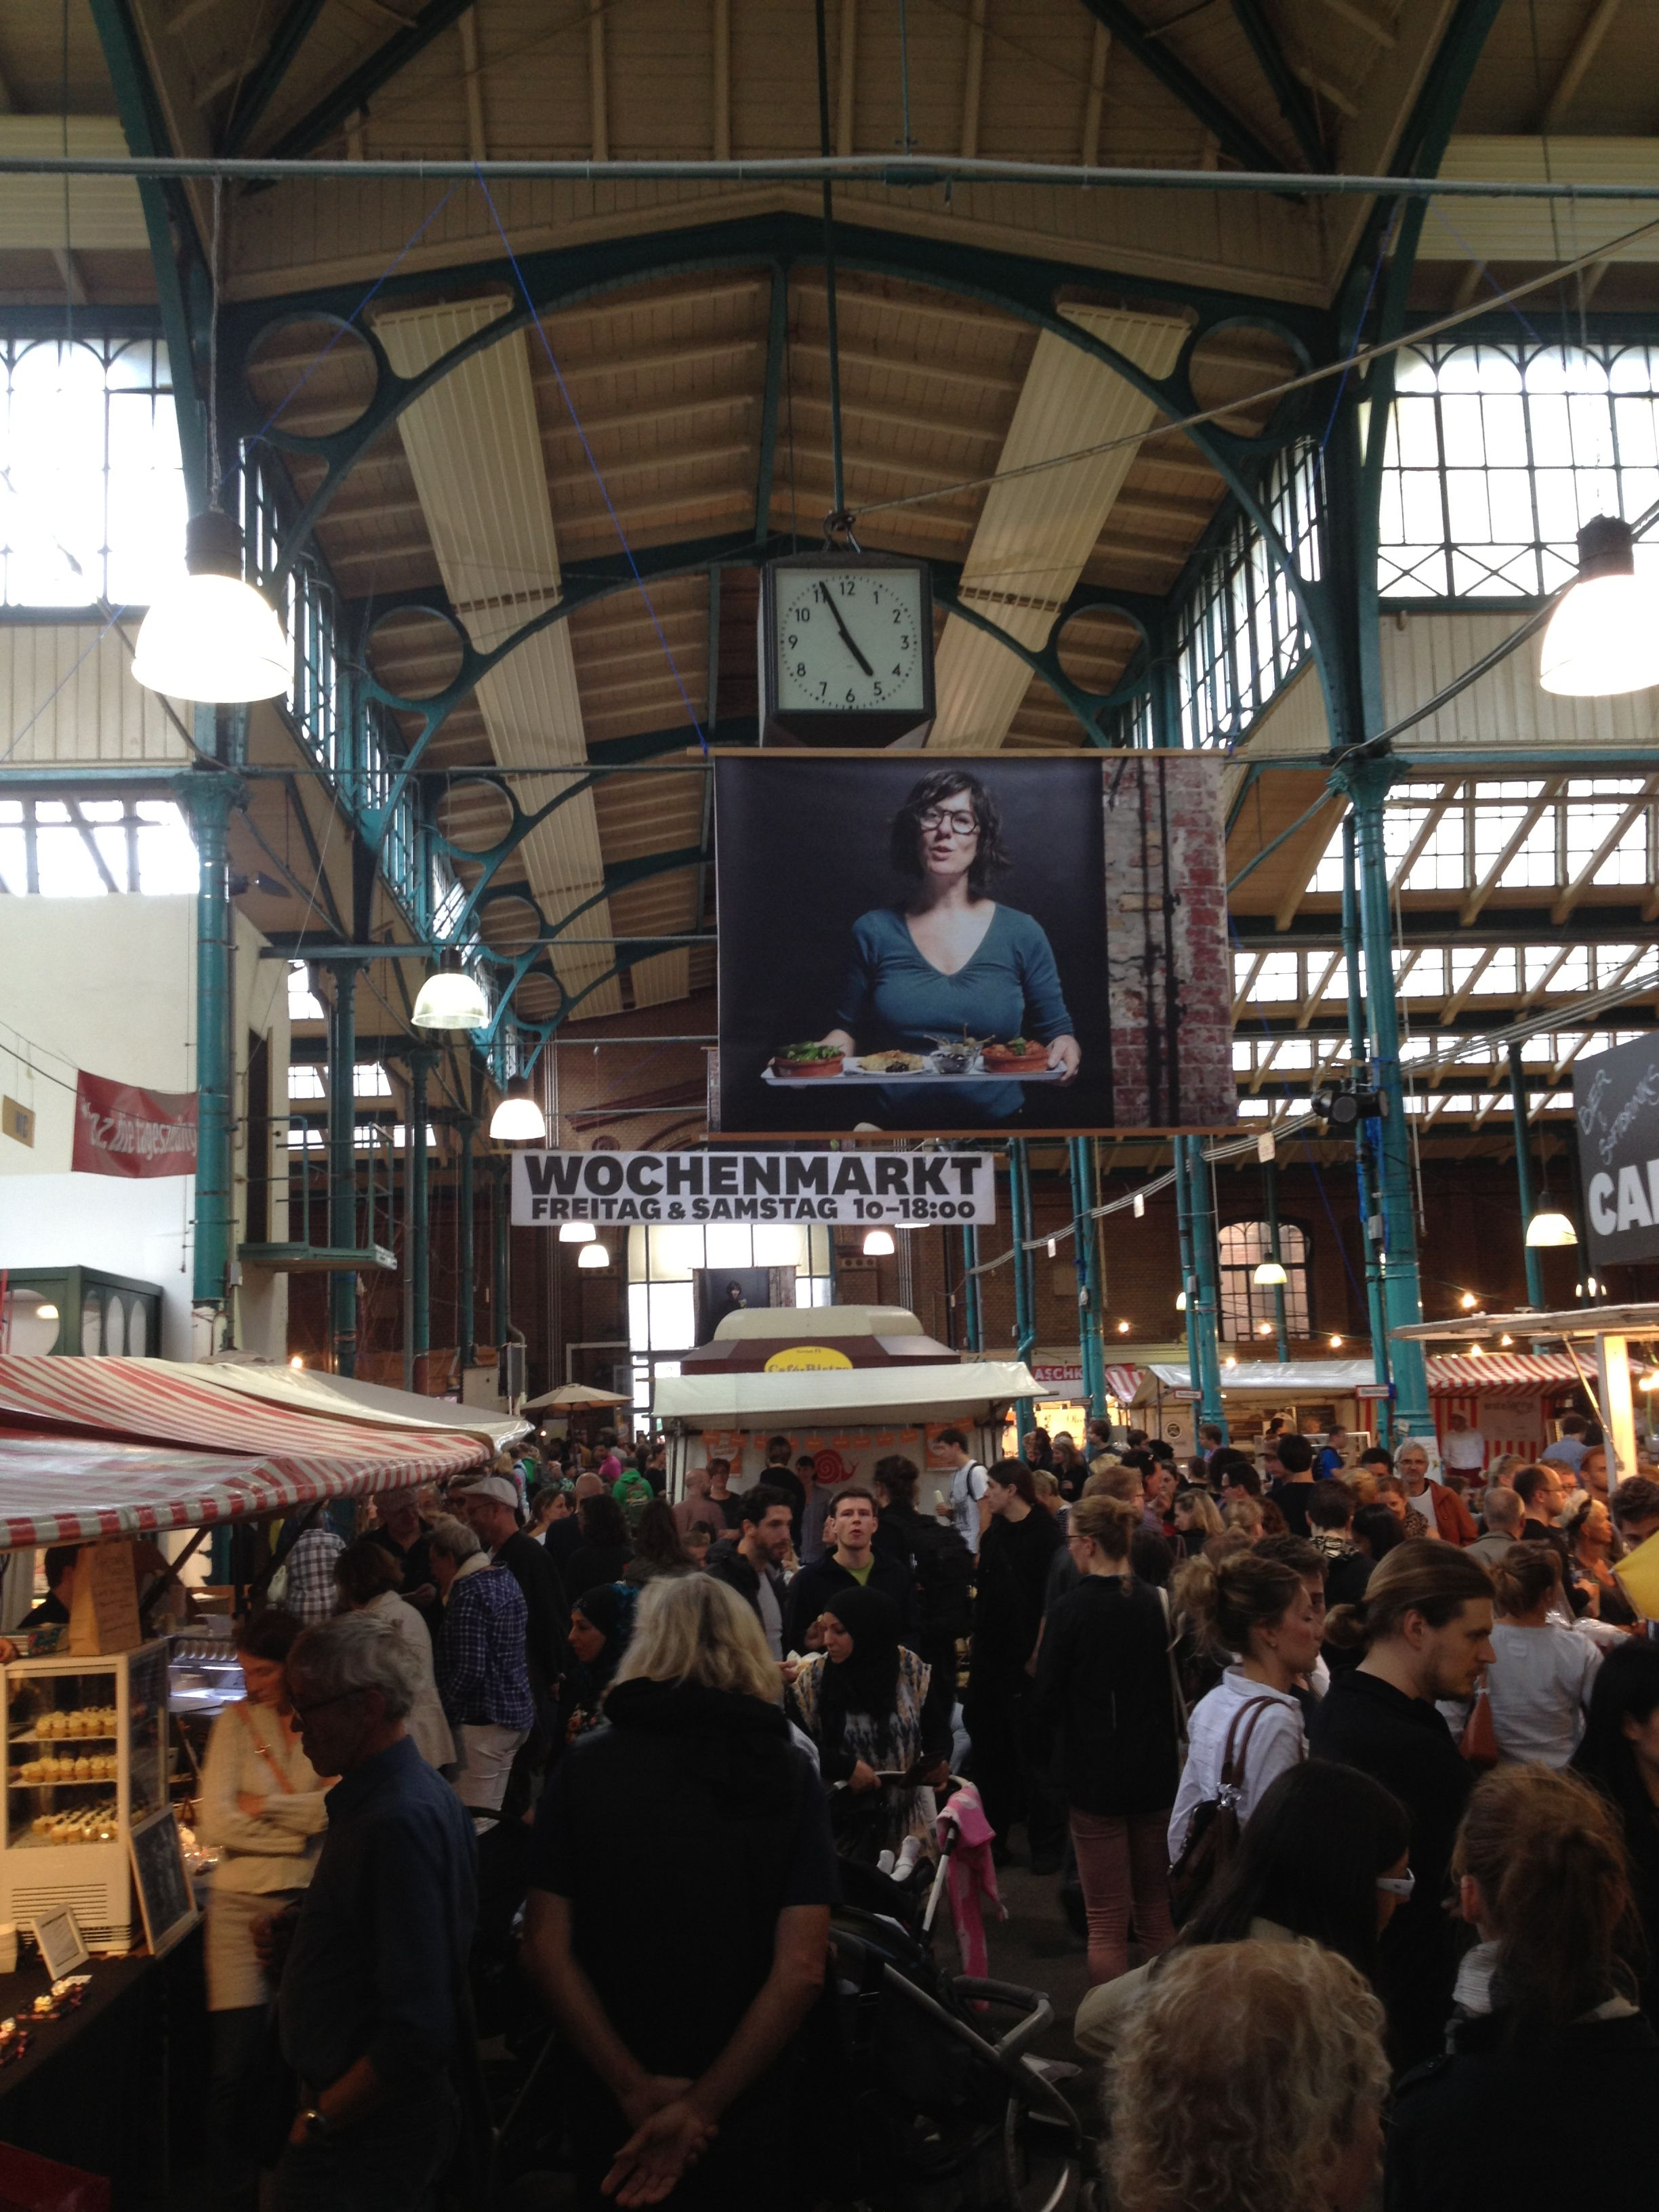 Day 7 Typical Berlin Food Market In Markthalle Neun Today Naschmarkt Sweets Galore 100daydesignchallenge Markthalle Naschmarkt Markthalle Neun